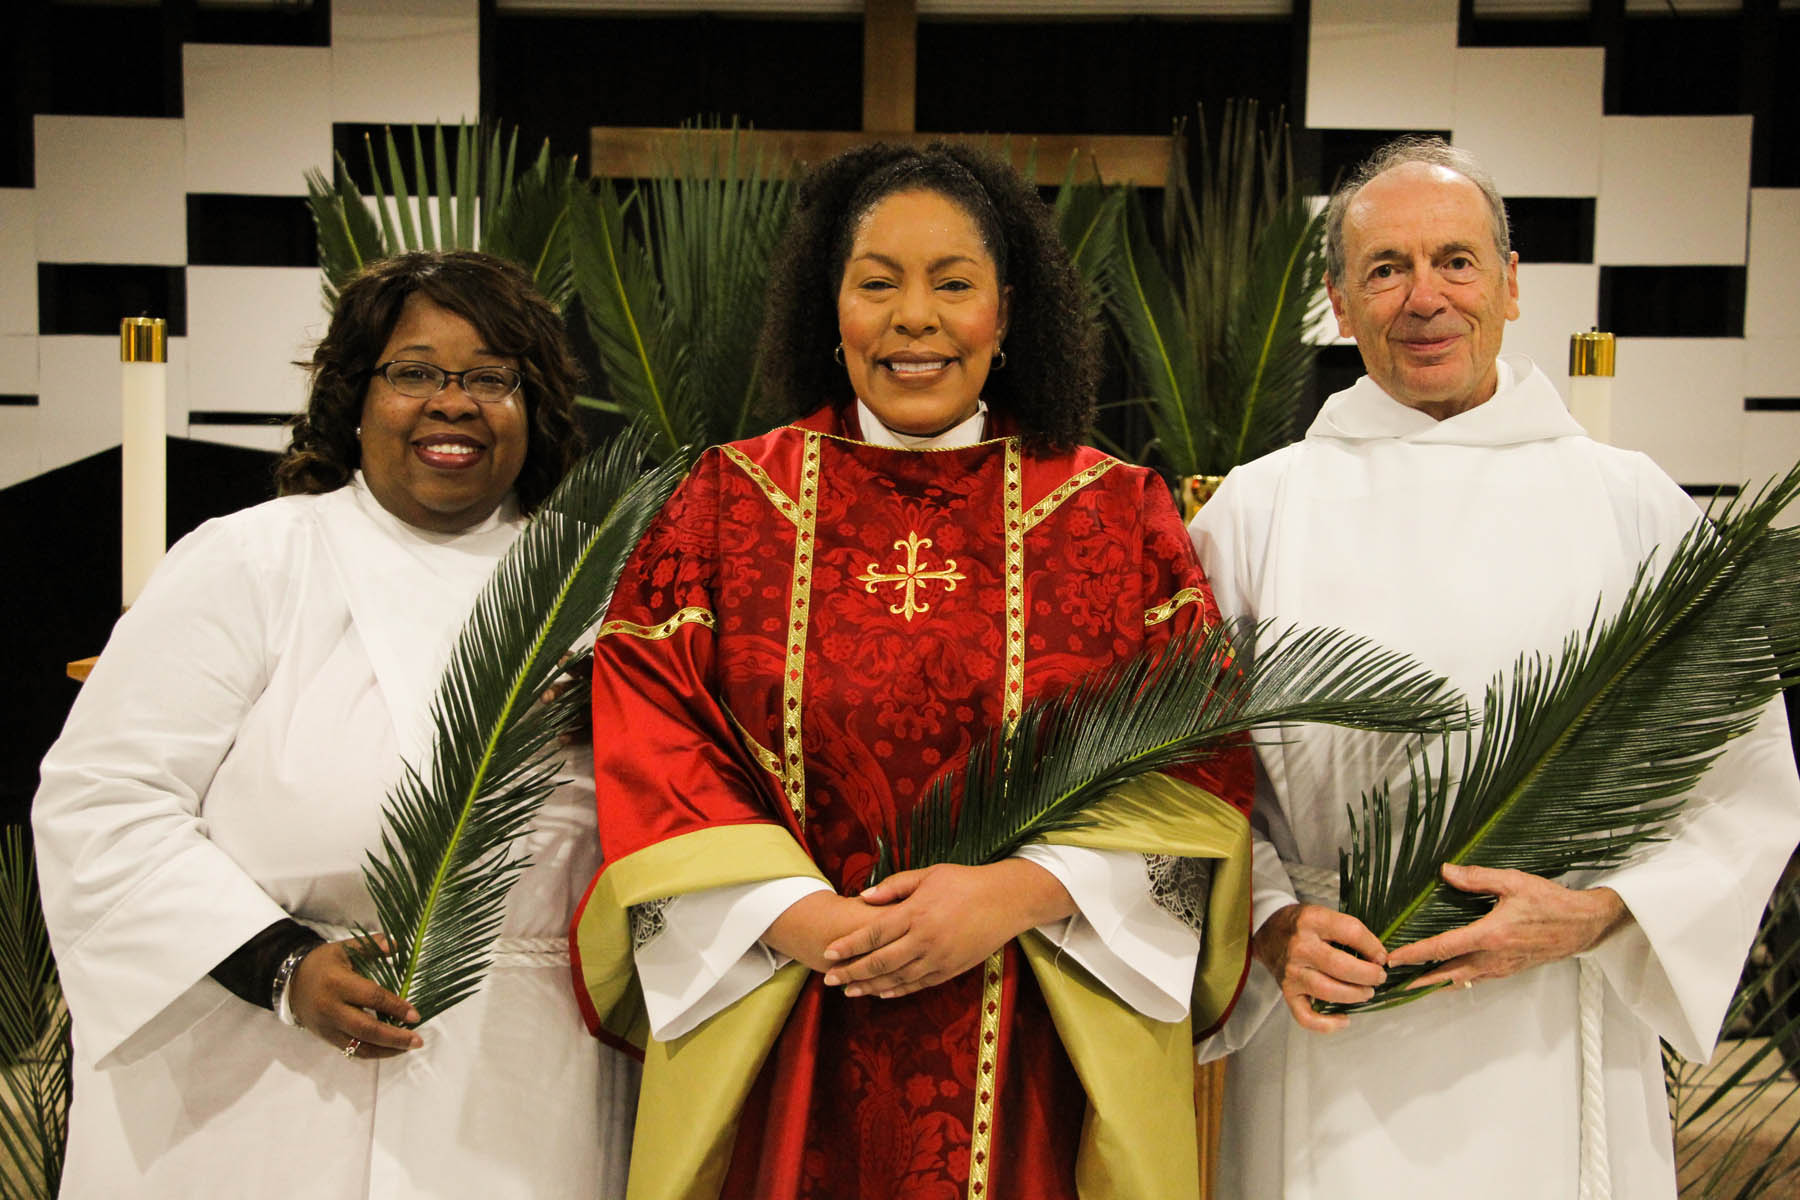 2019-04-14-WCEC-Palm-Sunday-110